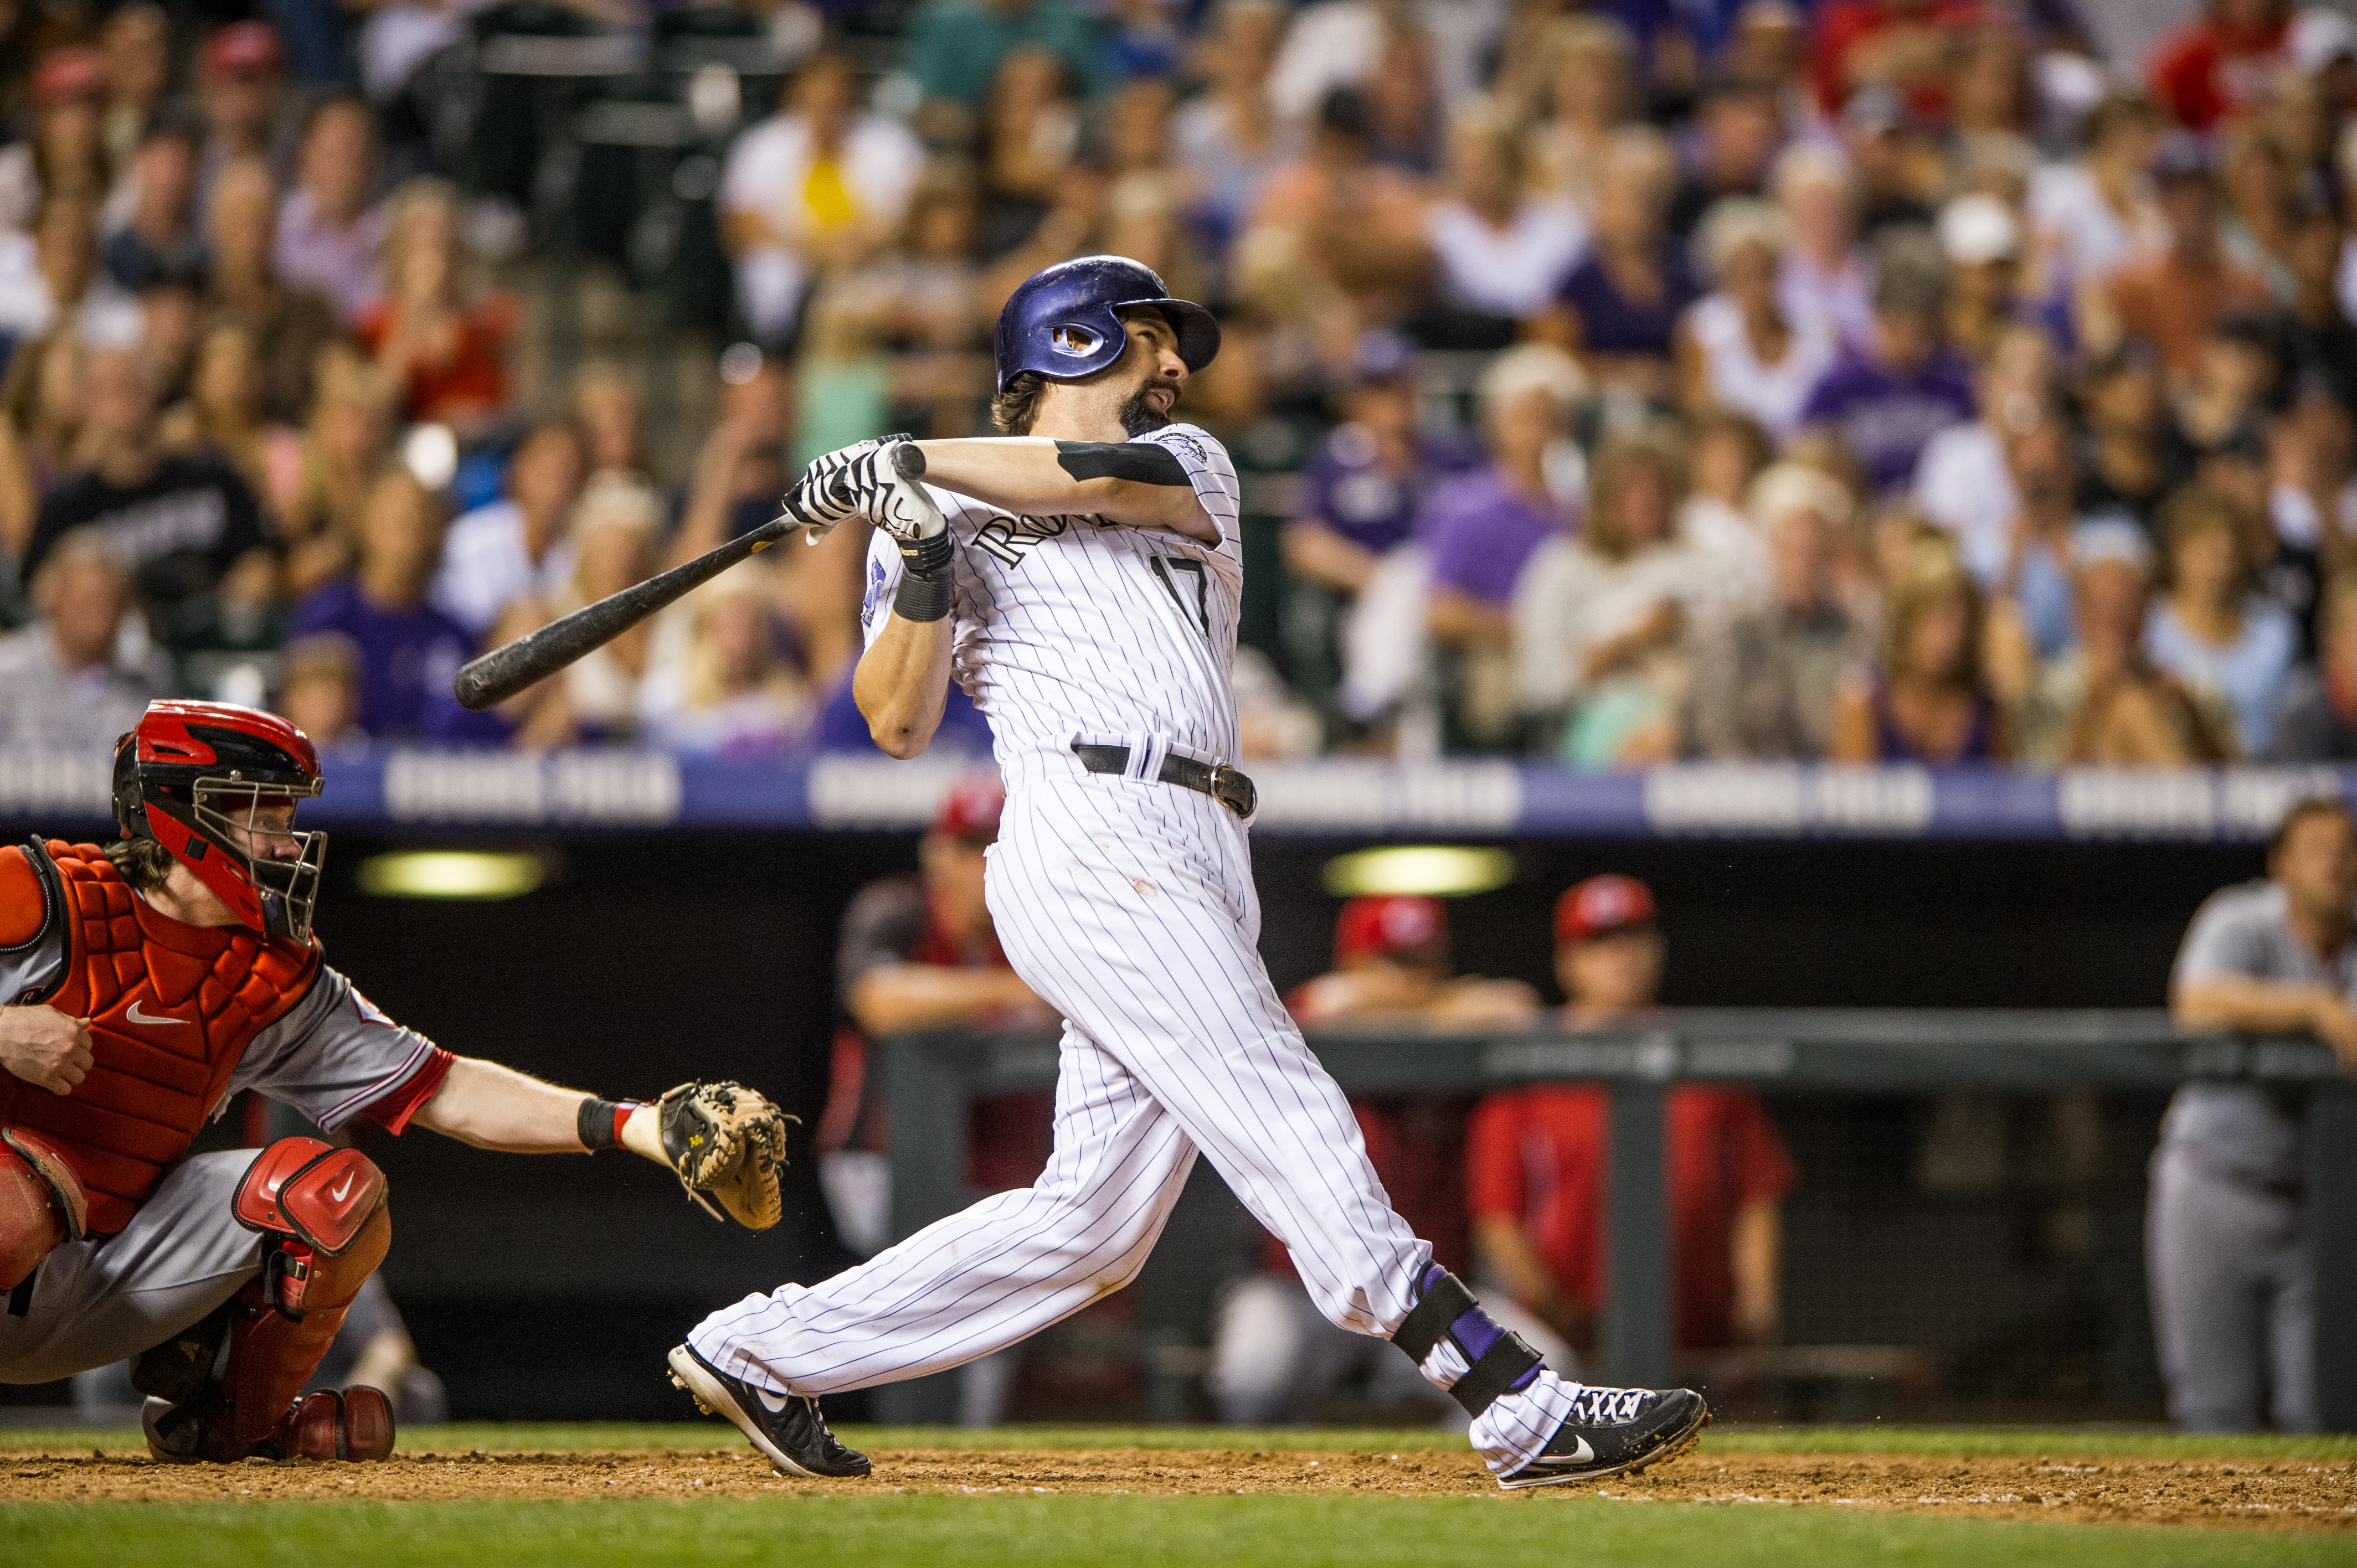 Todd Helton #17 of the Colorado Rockies hits his second three-run home run of the game for his 2,499th career hit in the seventh inning of a game against the Cincinnati Reds at Coors Field on August 30, 2013 in Denver, Colorado. The Rockies beat the Reds 9-6. Helton hold the Rockies record for the most home runs (Photo by Dustin Bradford/Getty Images)